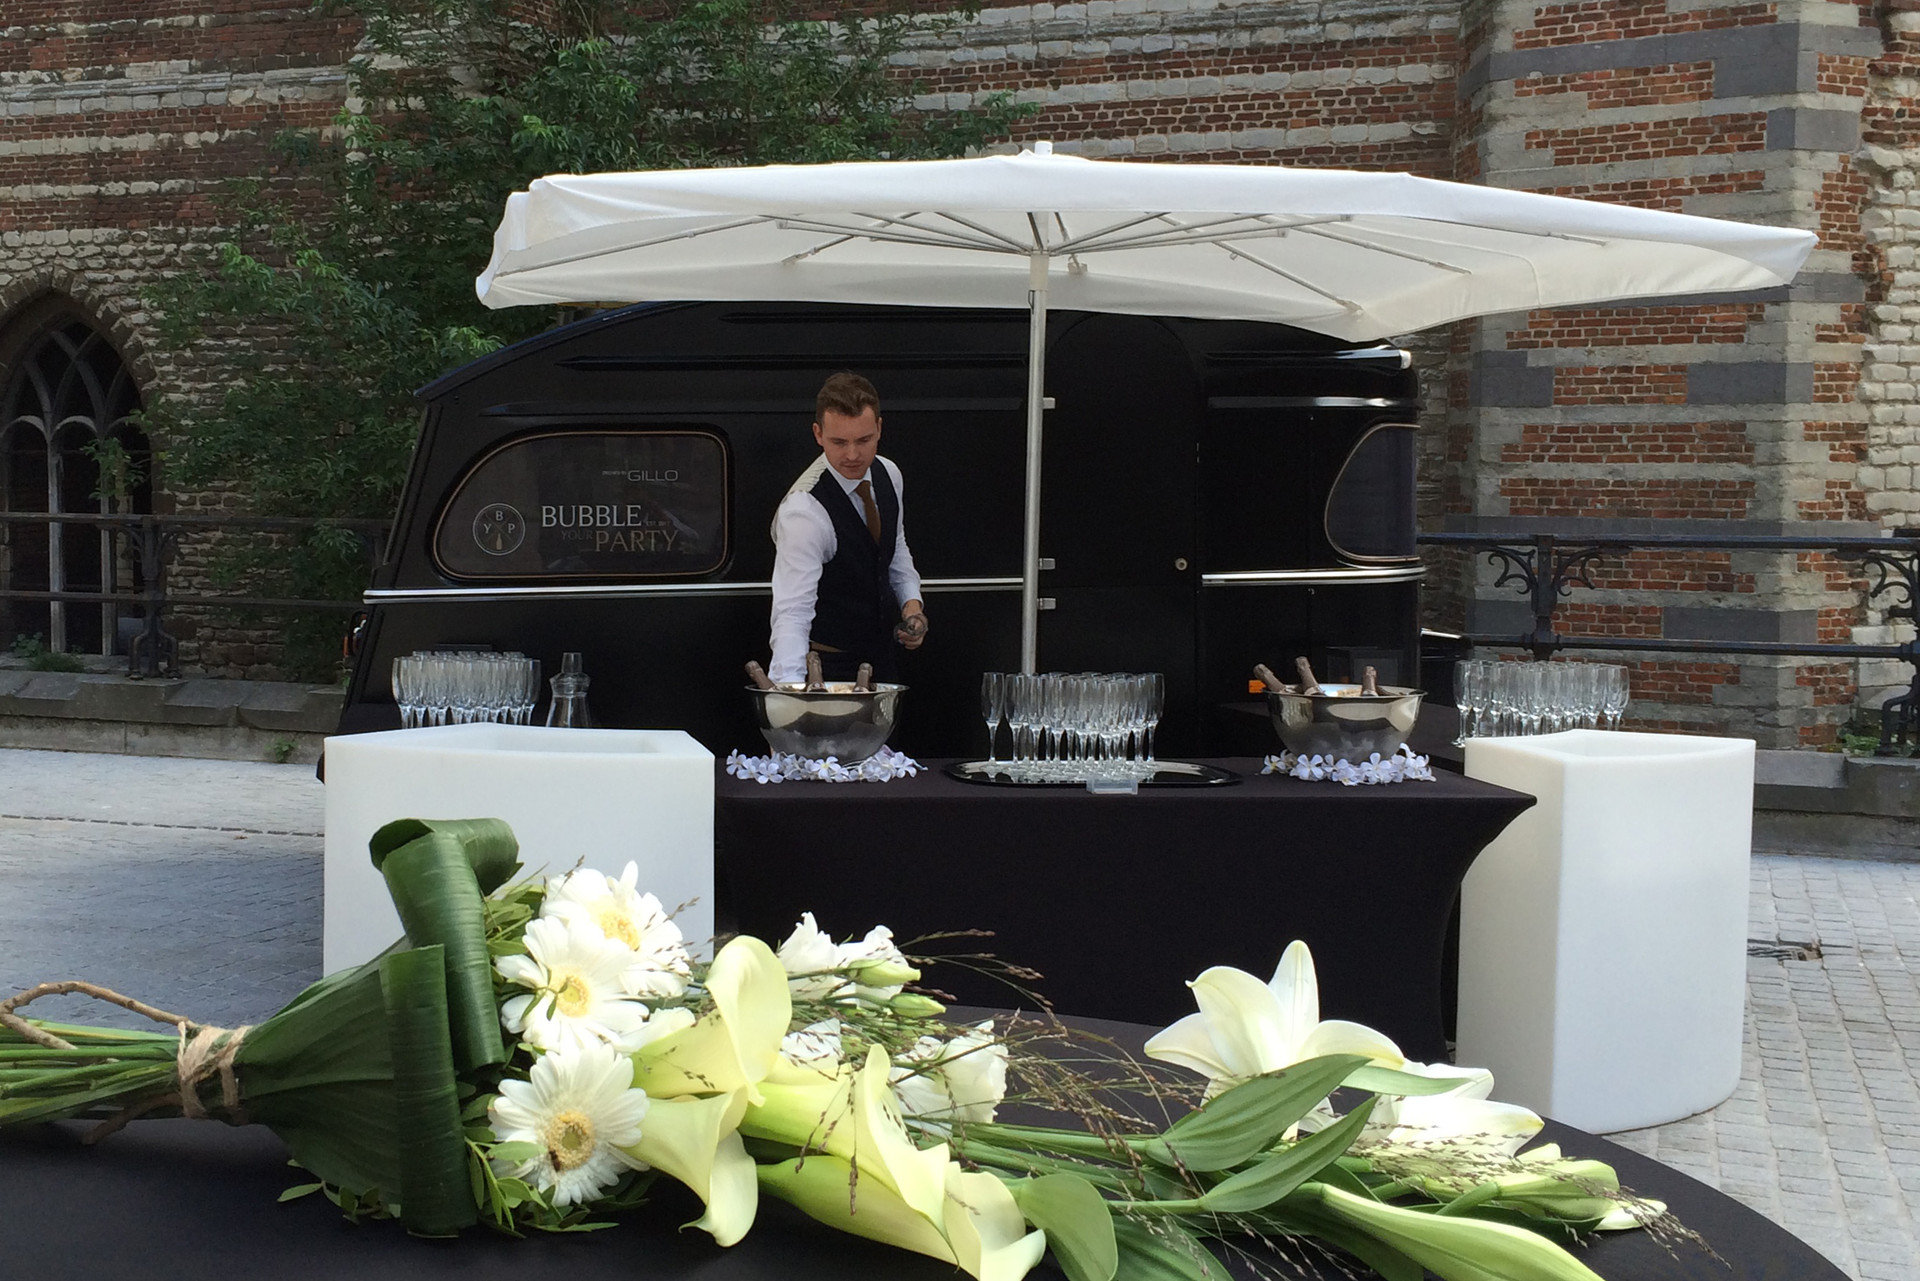 BYP mobiele champagnebar